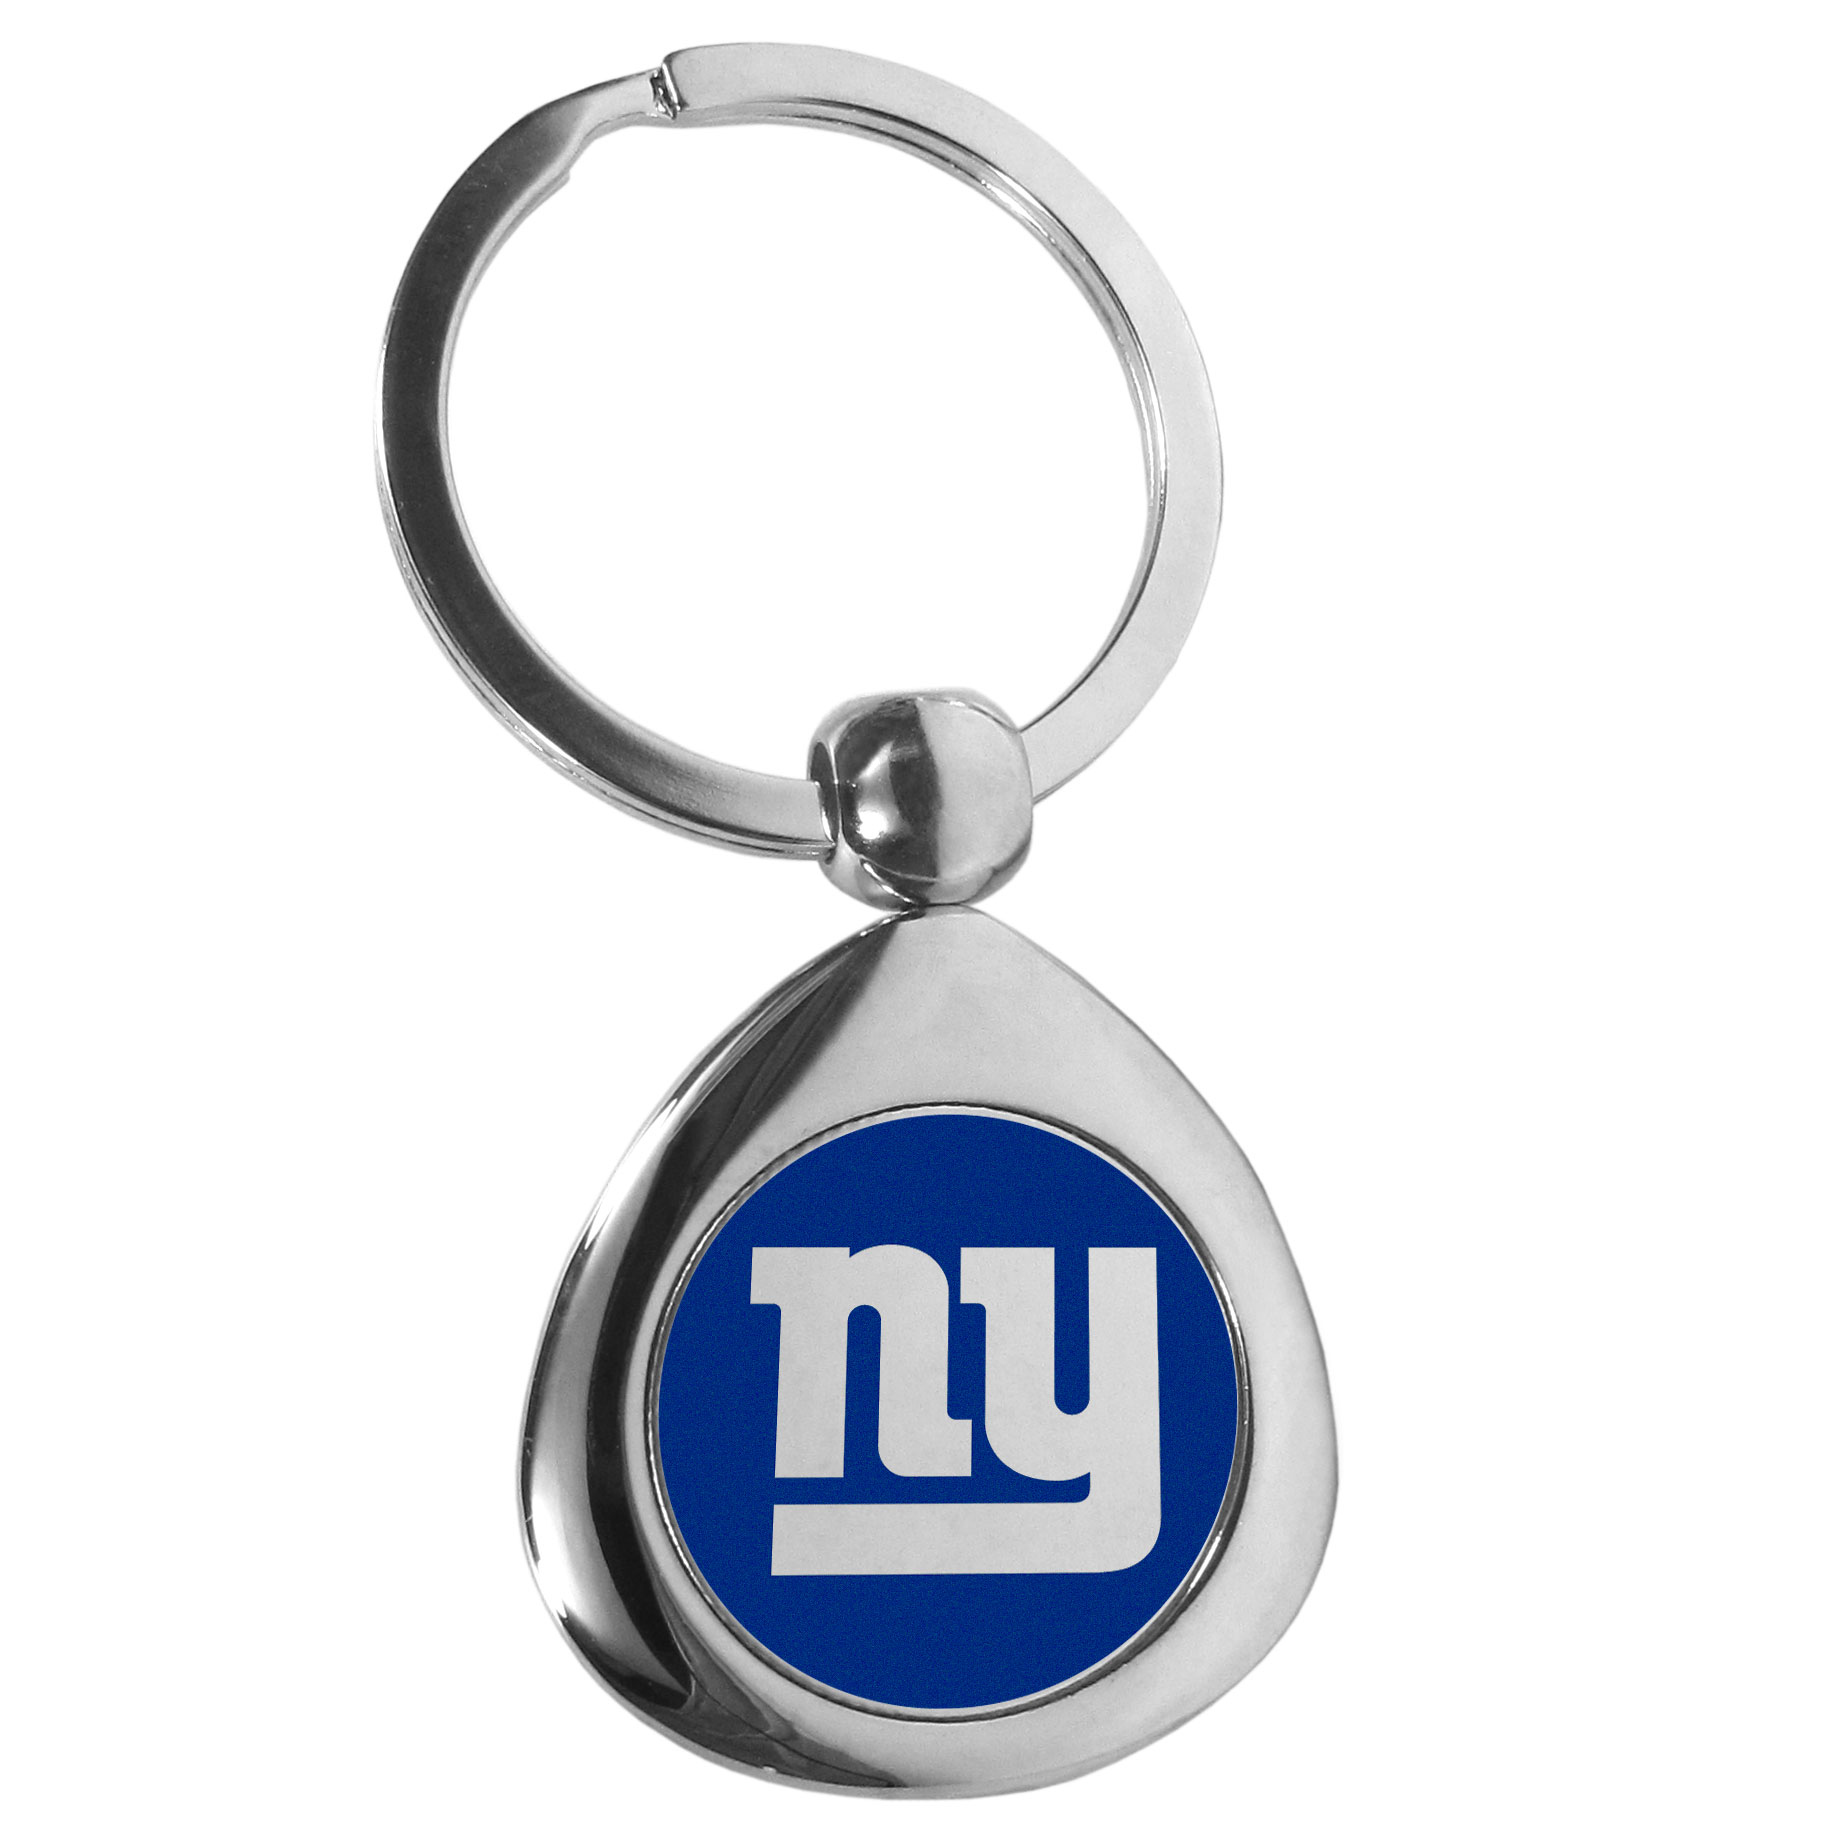 New York Giants Round Teardrop Key Chain - Our high polish chrome New York Giants round teardrop key chain has a classy look with a sporty twist. The high-quality key fob features the team logo in the team's primary color. The key ring is a flat split ring that is easier to load you home and auto keys onto.